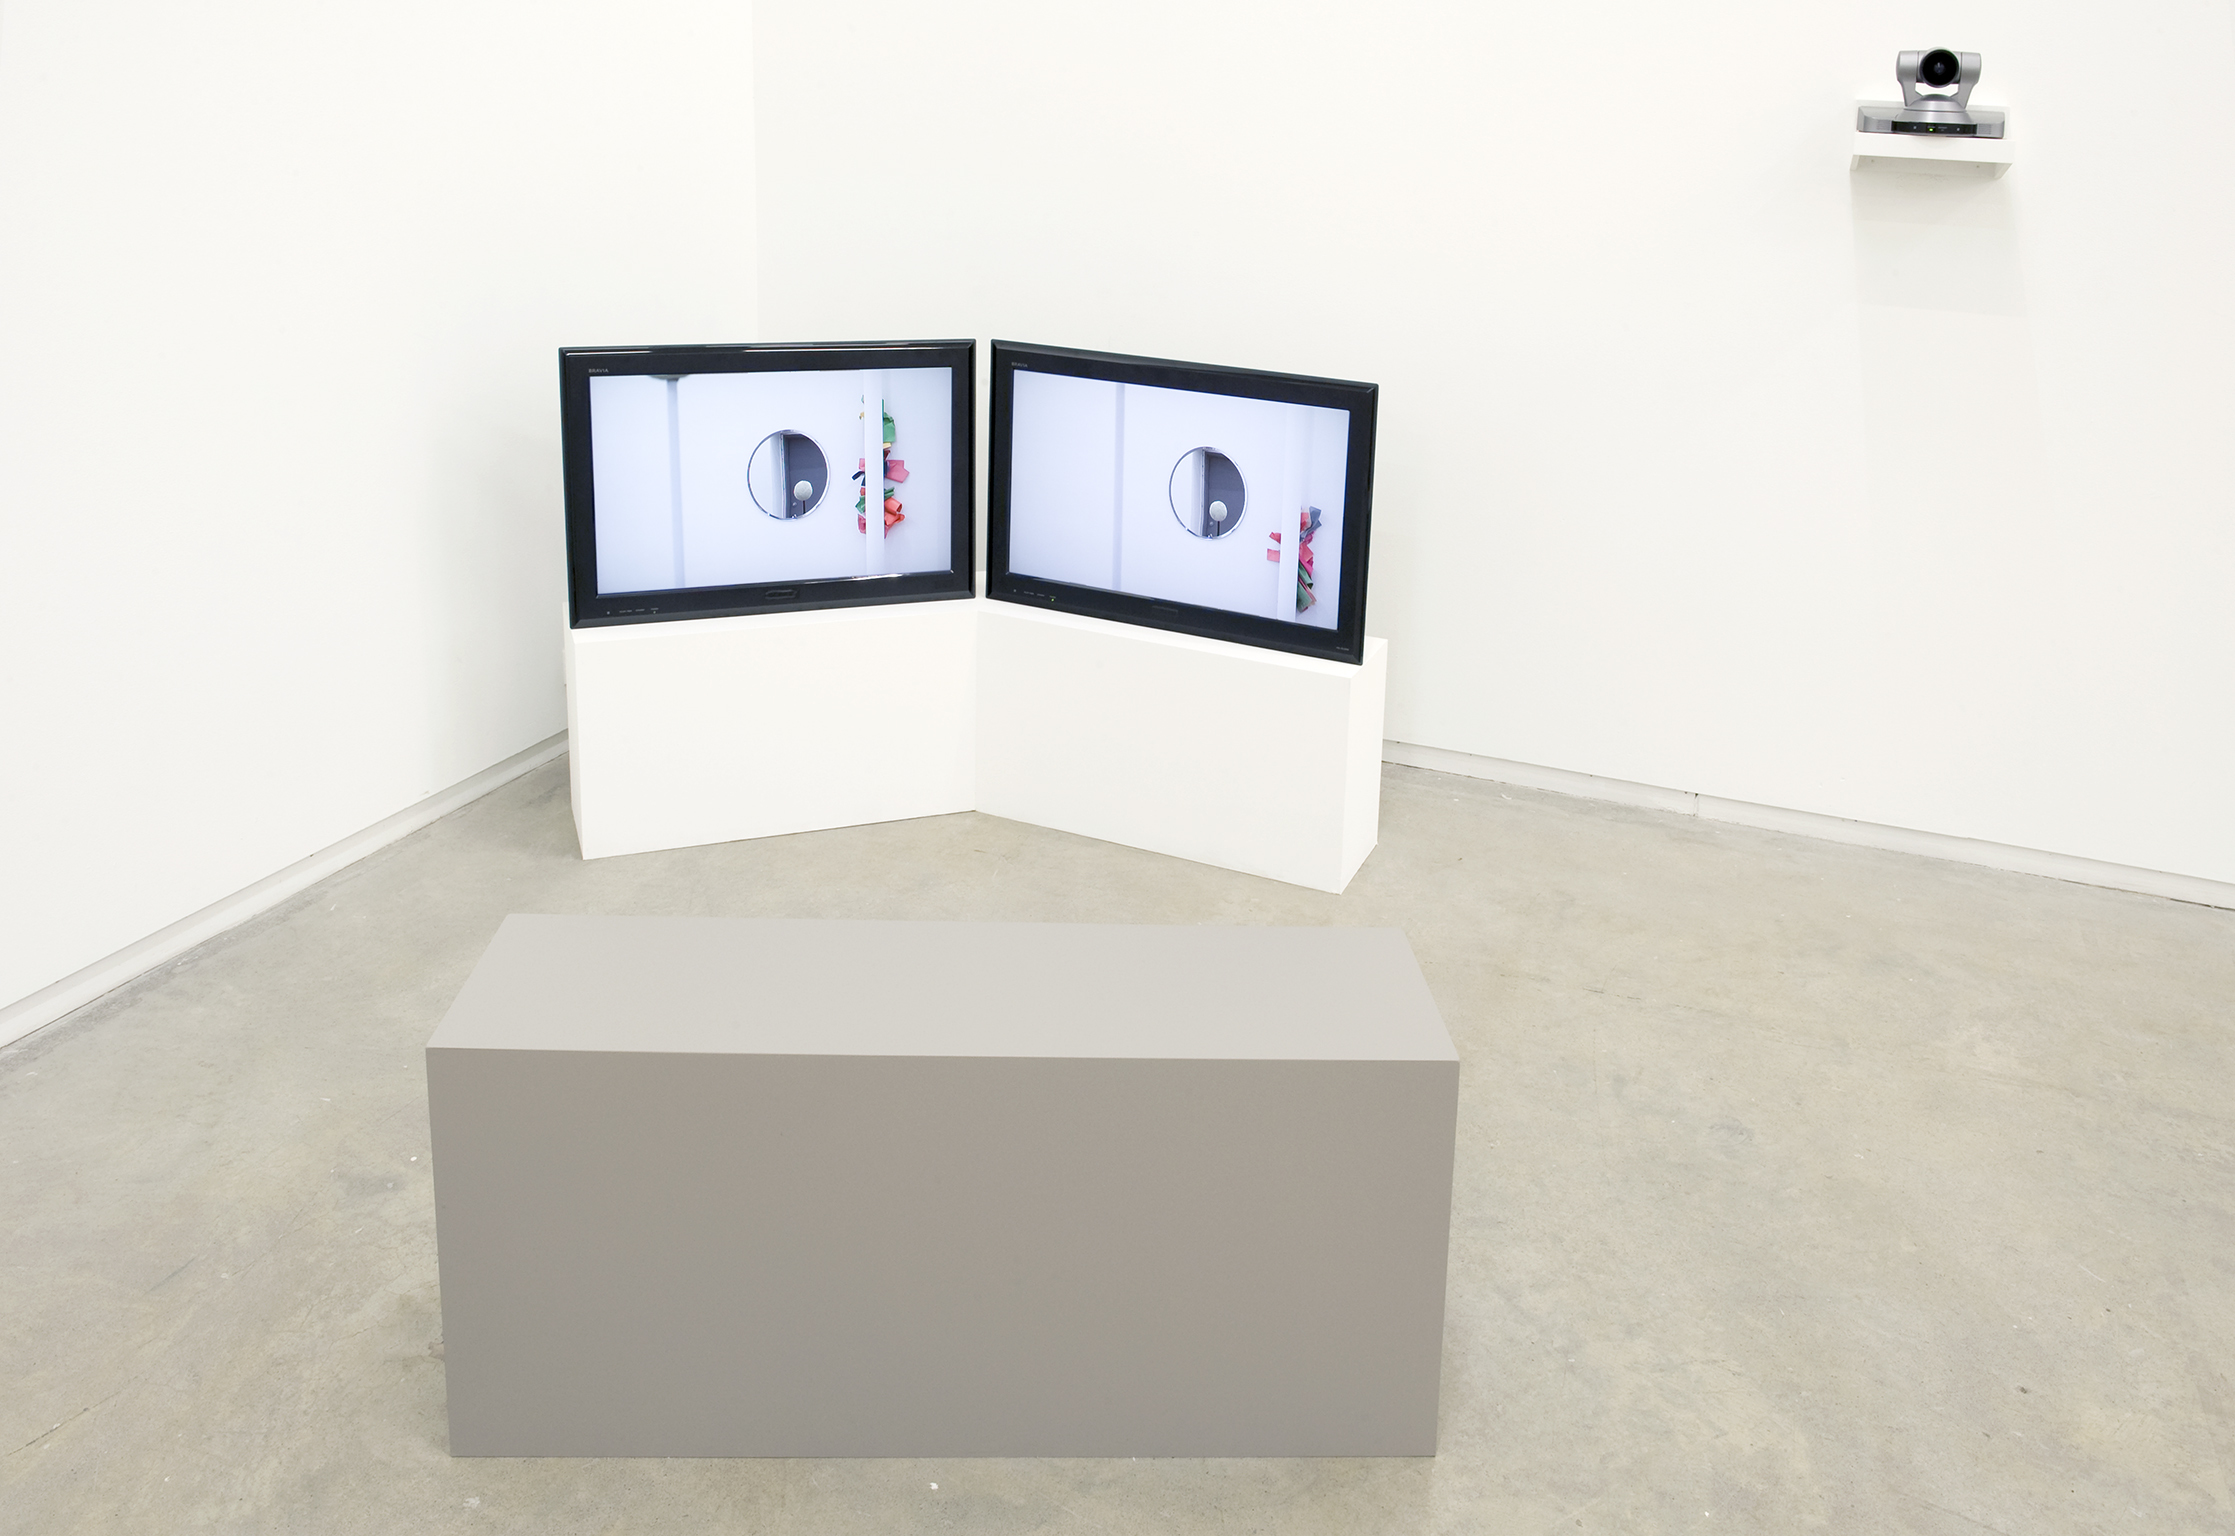 Judy Radul, Clients and Workers, 2011, live and pre-recorded video, objects, tape, painted copper and aluminum, dimensions variable by